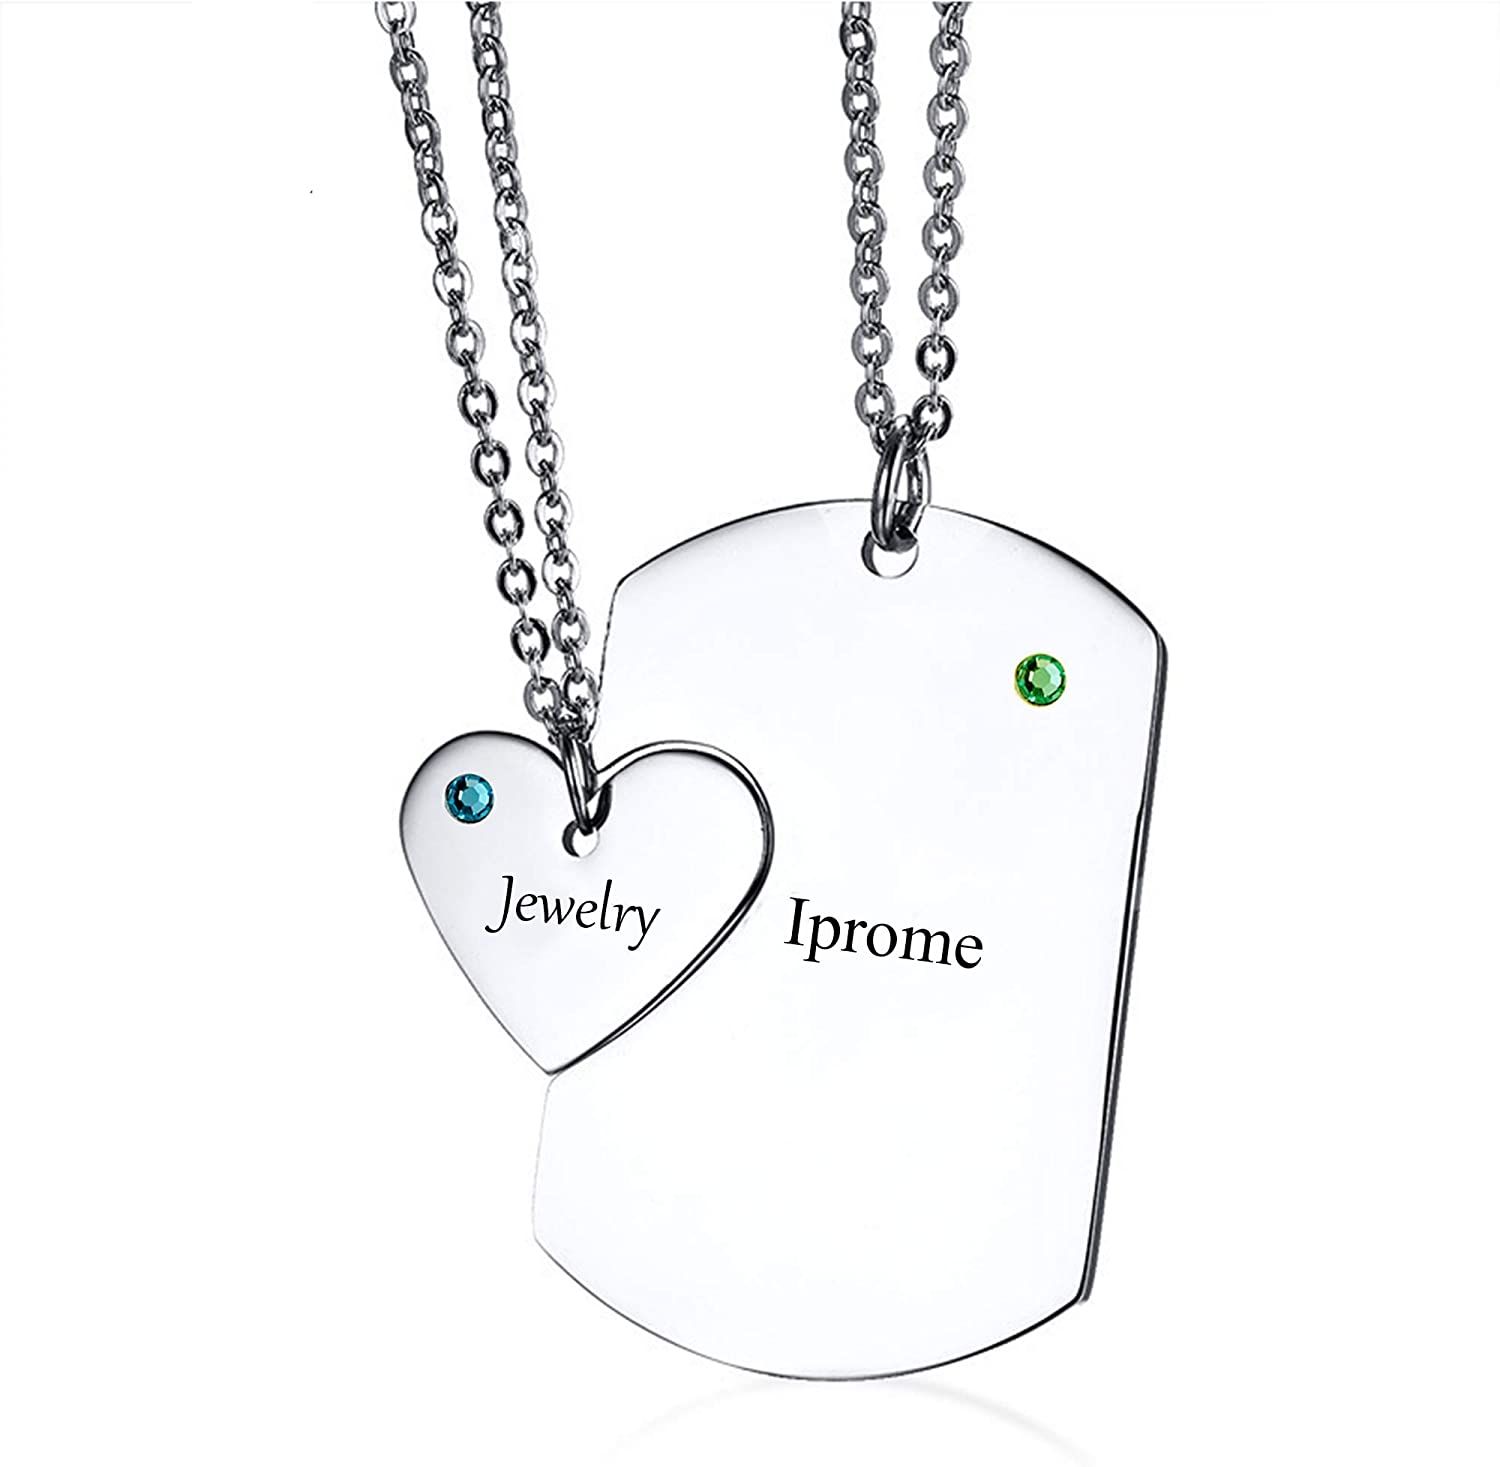 Custom Made with Any Name Iprome Personalized Dog Tag Heart Puzzle Couples Necklace Set with Birthstones